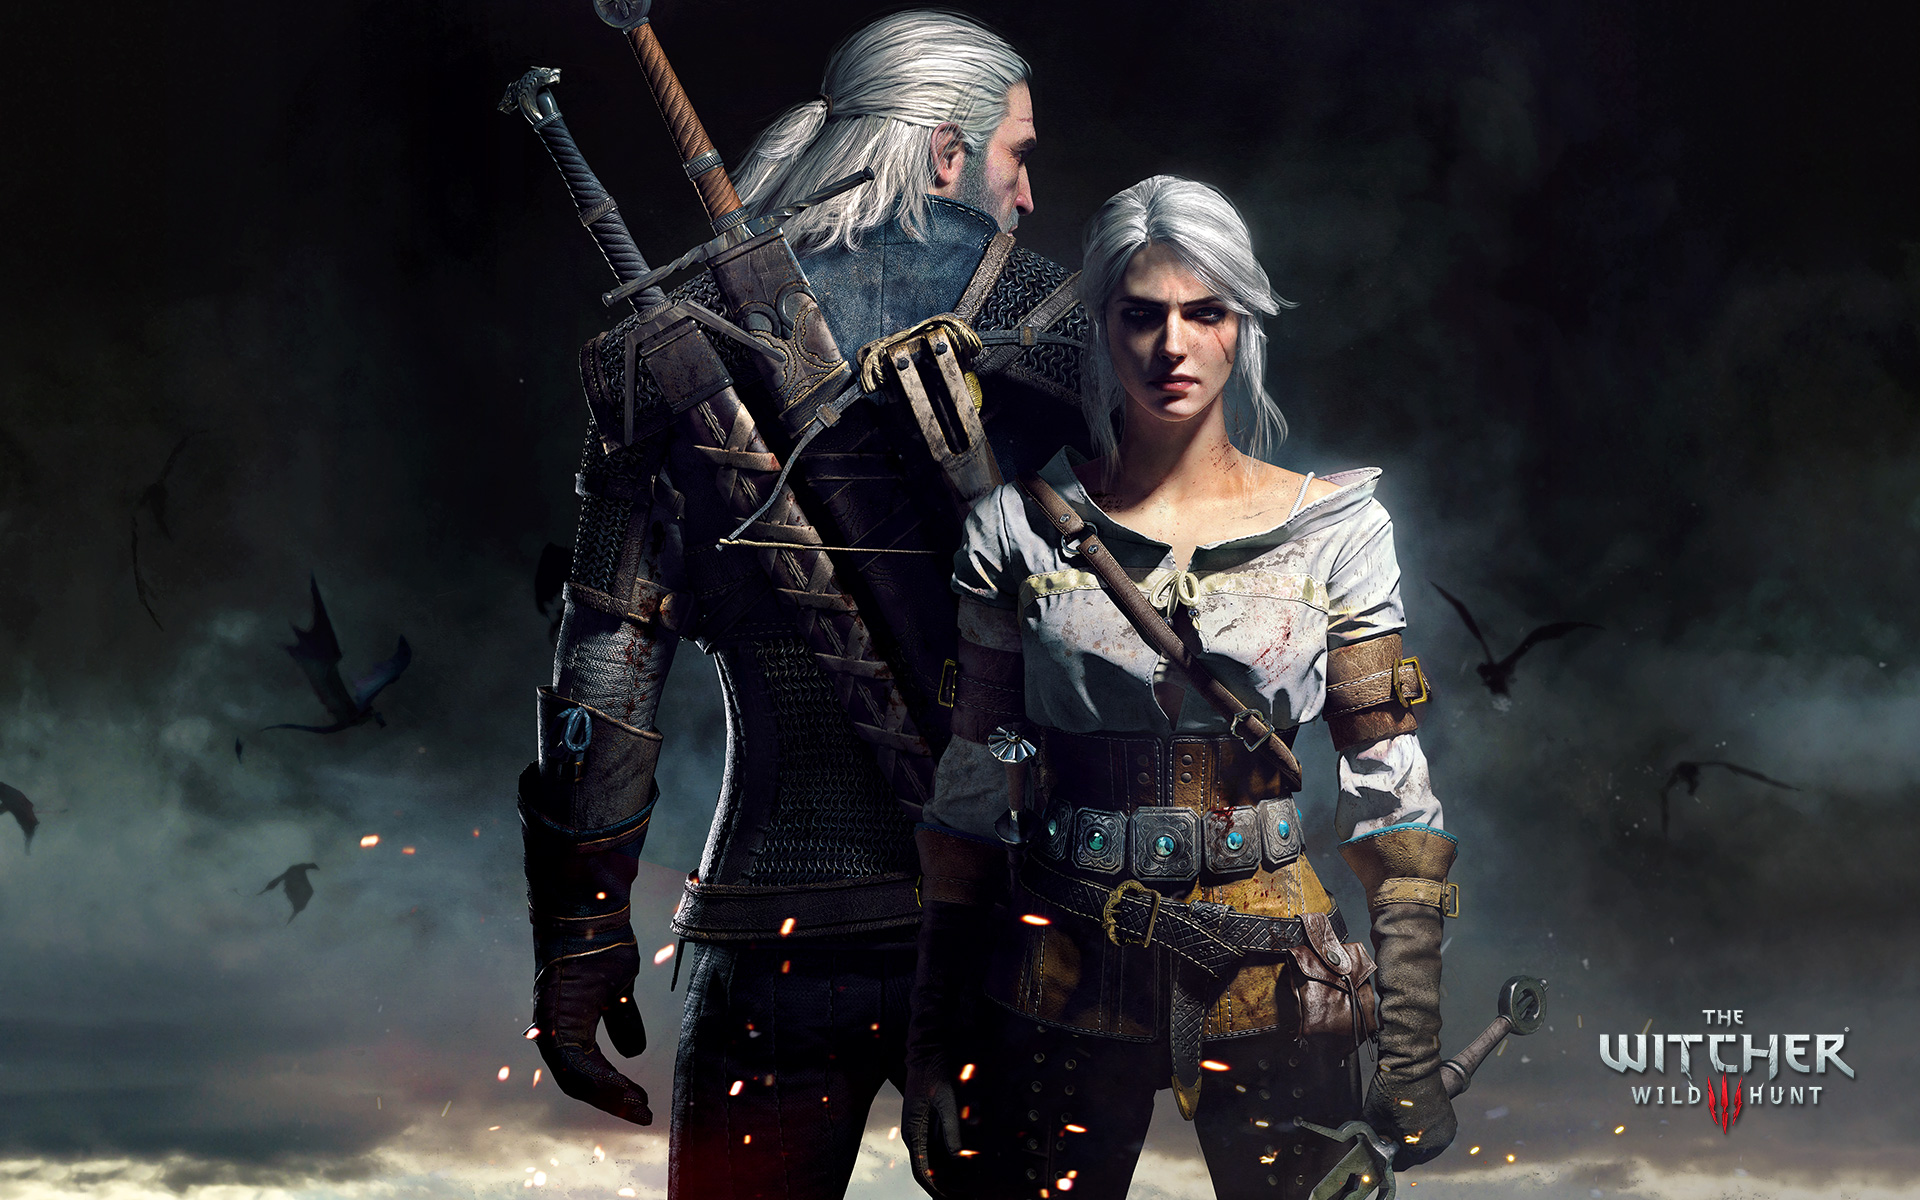 The Witcher 3: Wild Hunt New Game Plus Free DLC Now Out on